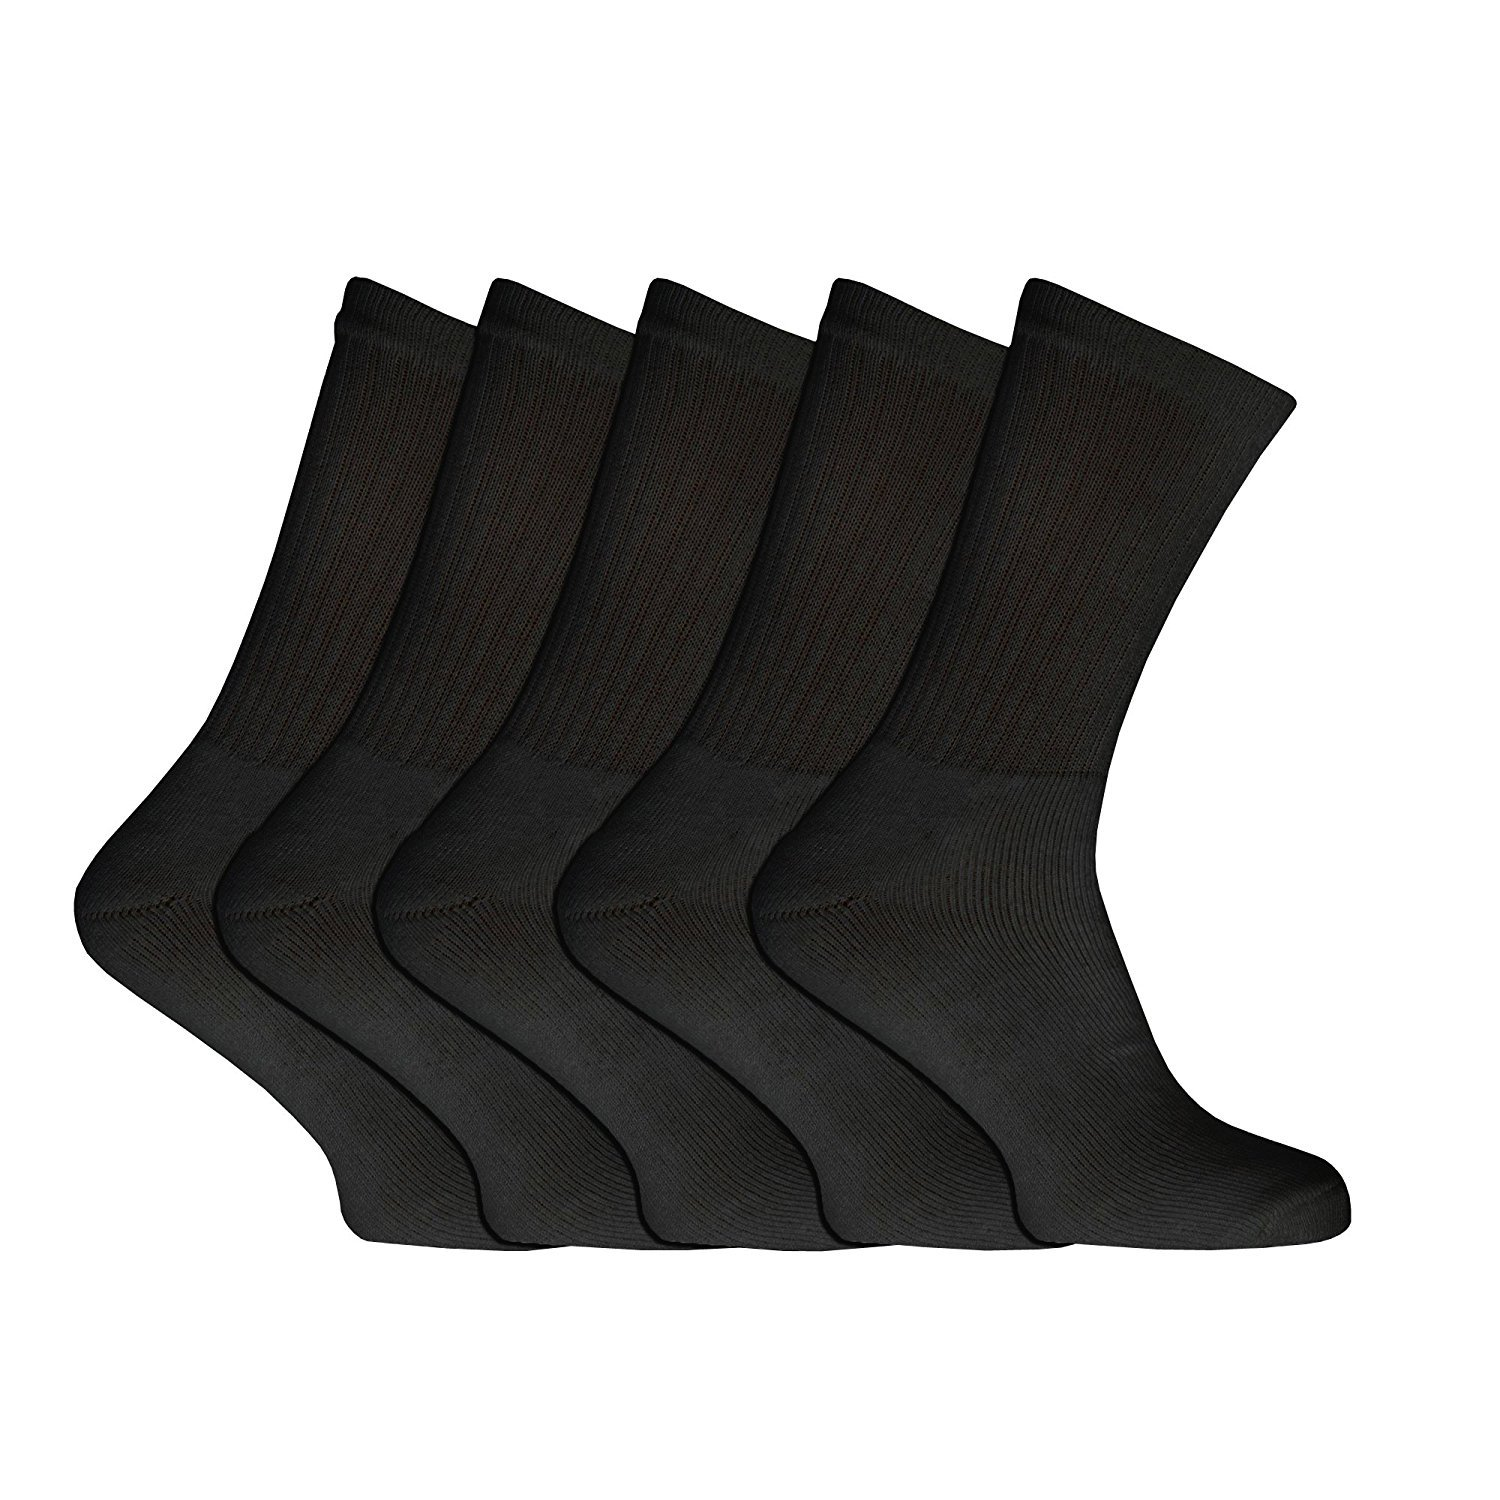 3 Pairs Boys Girls Kids Teens Black Cotton School Gym Sports Calf Ankle Crew Socks Size 3-7